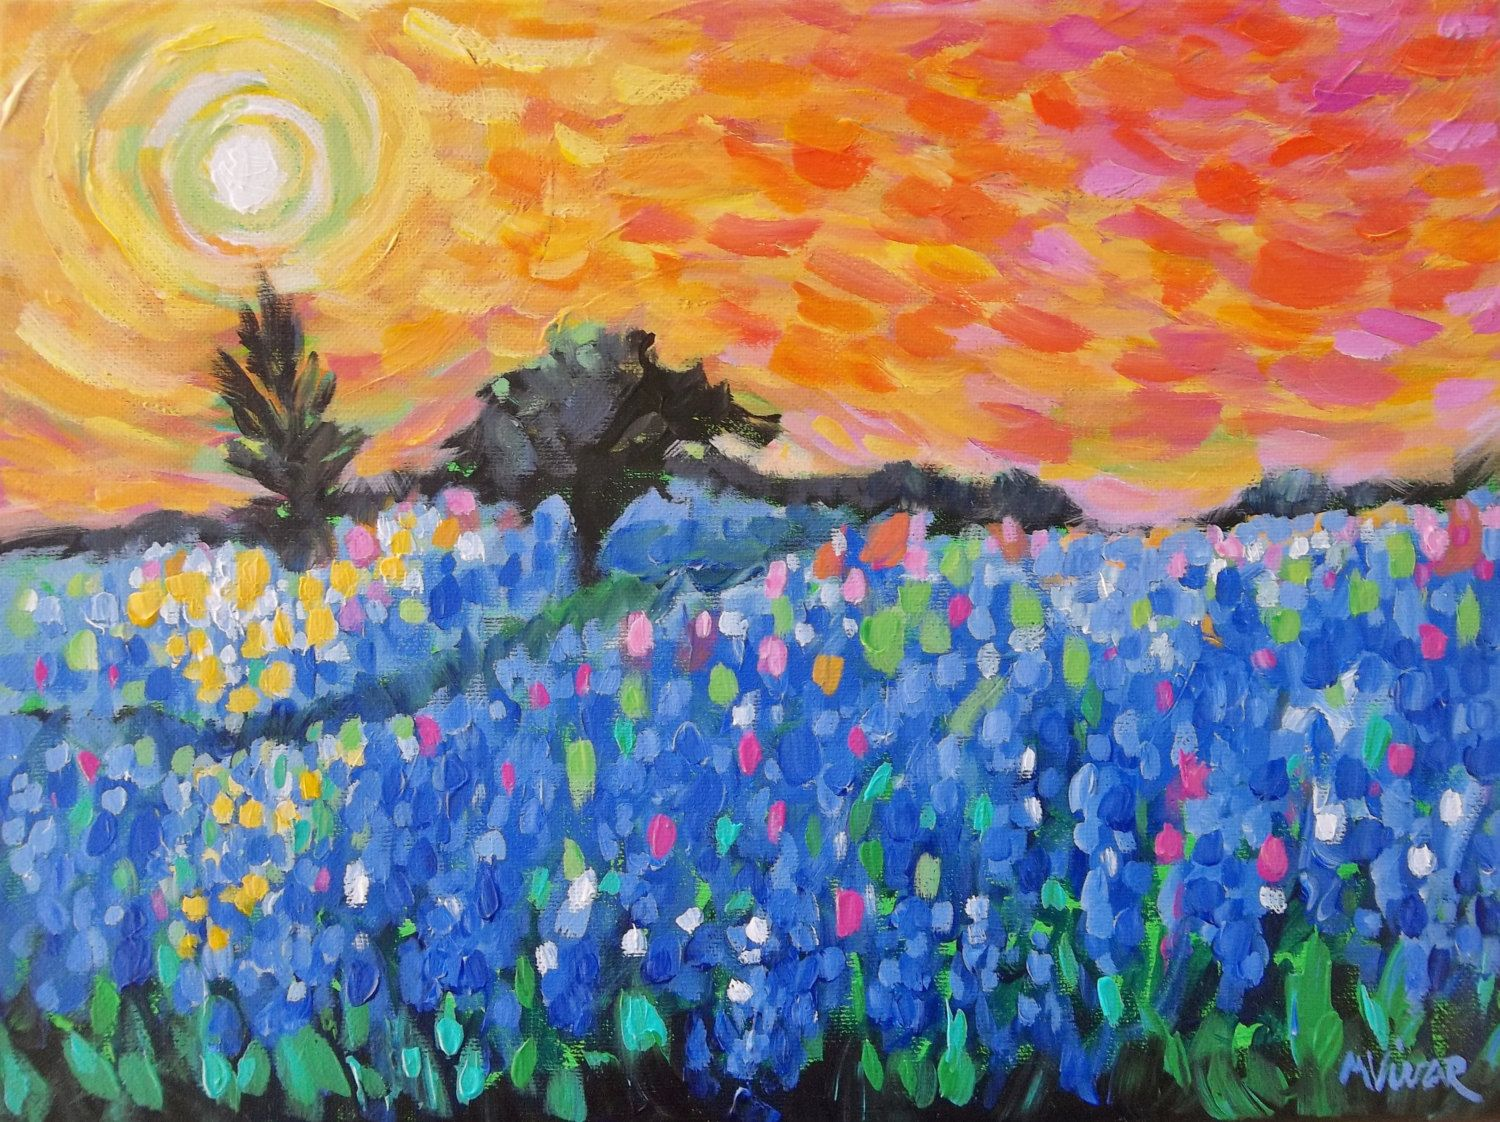 Watercolor artists in texas - Texas Bluebonnet Painting Art Original Impressionist Landscape Painting By Monavivarfineart On Etsy